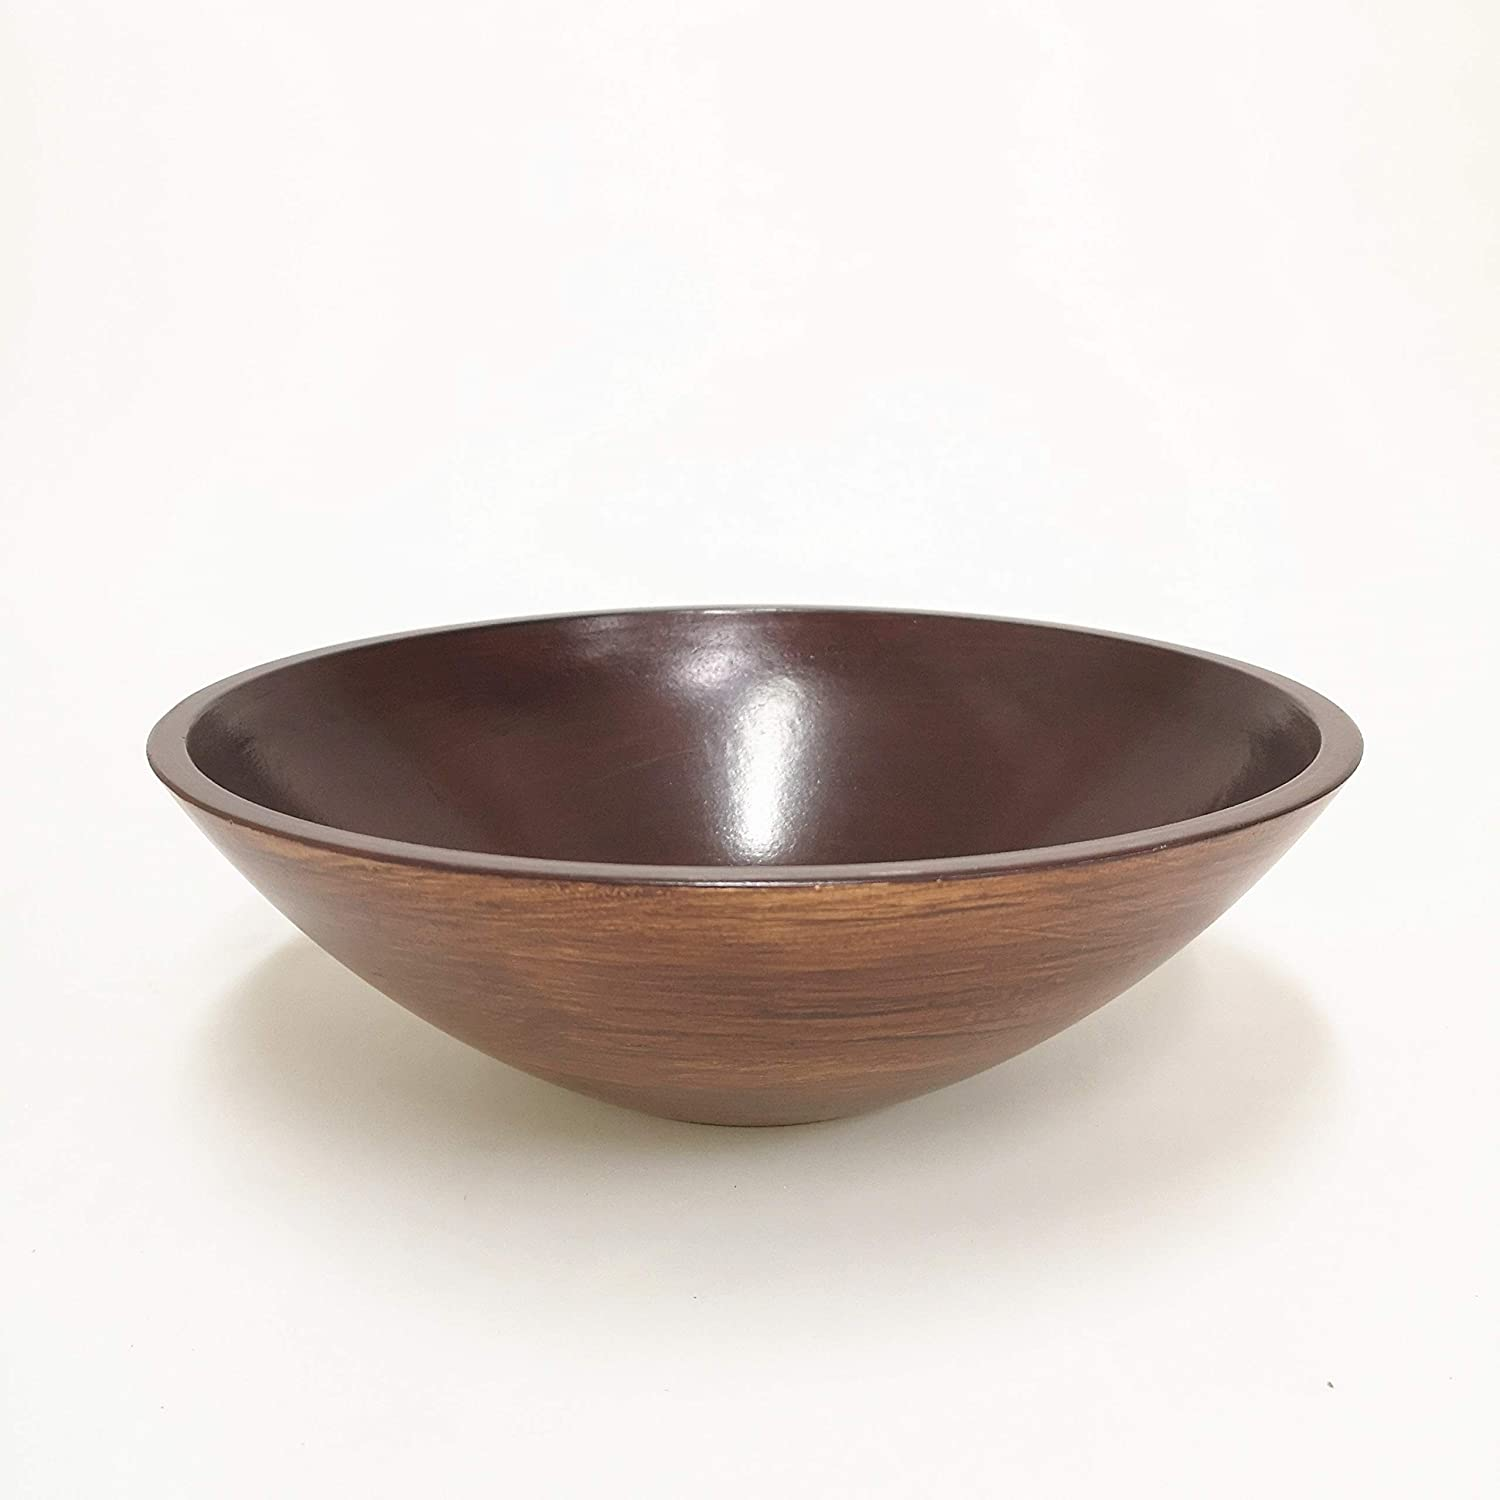 Hosley 11.8 Inch Diameter Wood Finish Decorator Bowl Ideal for Dried Floral Arrangements with Orbs Potpourri or Just as Decor Ideal Gift for Weddings or Special Occasions O3 (Brown 2)